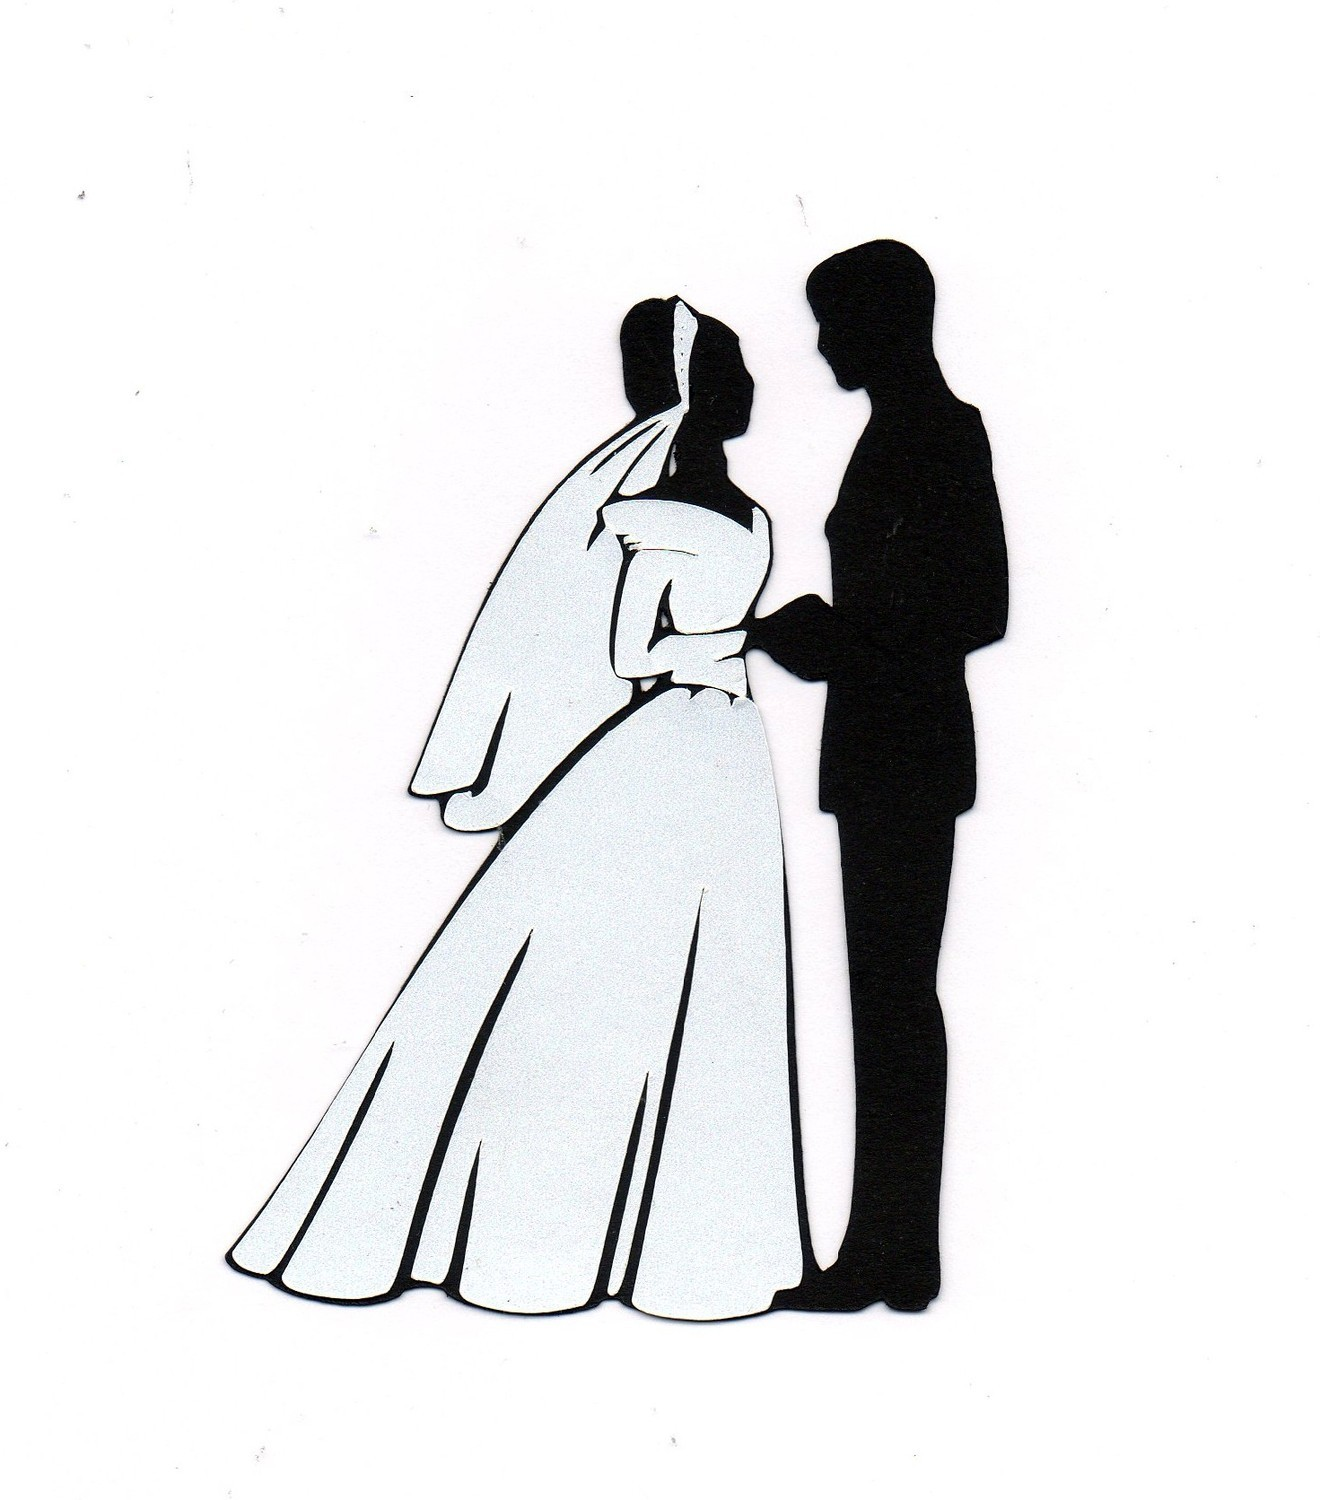 hight resolution of bride and groom clipart 7 bride and groom silhouette image 2